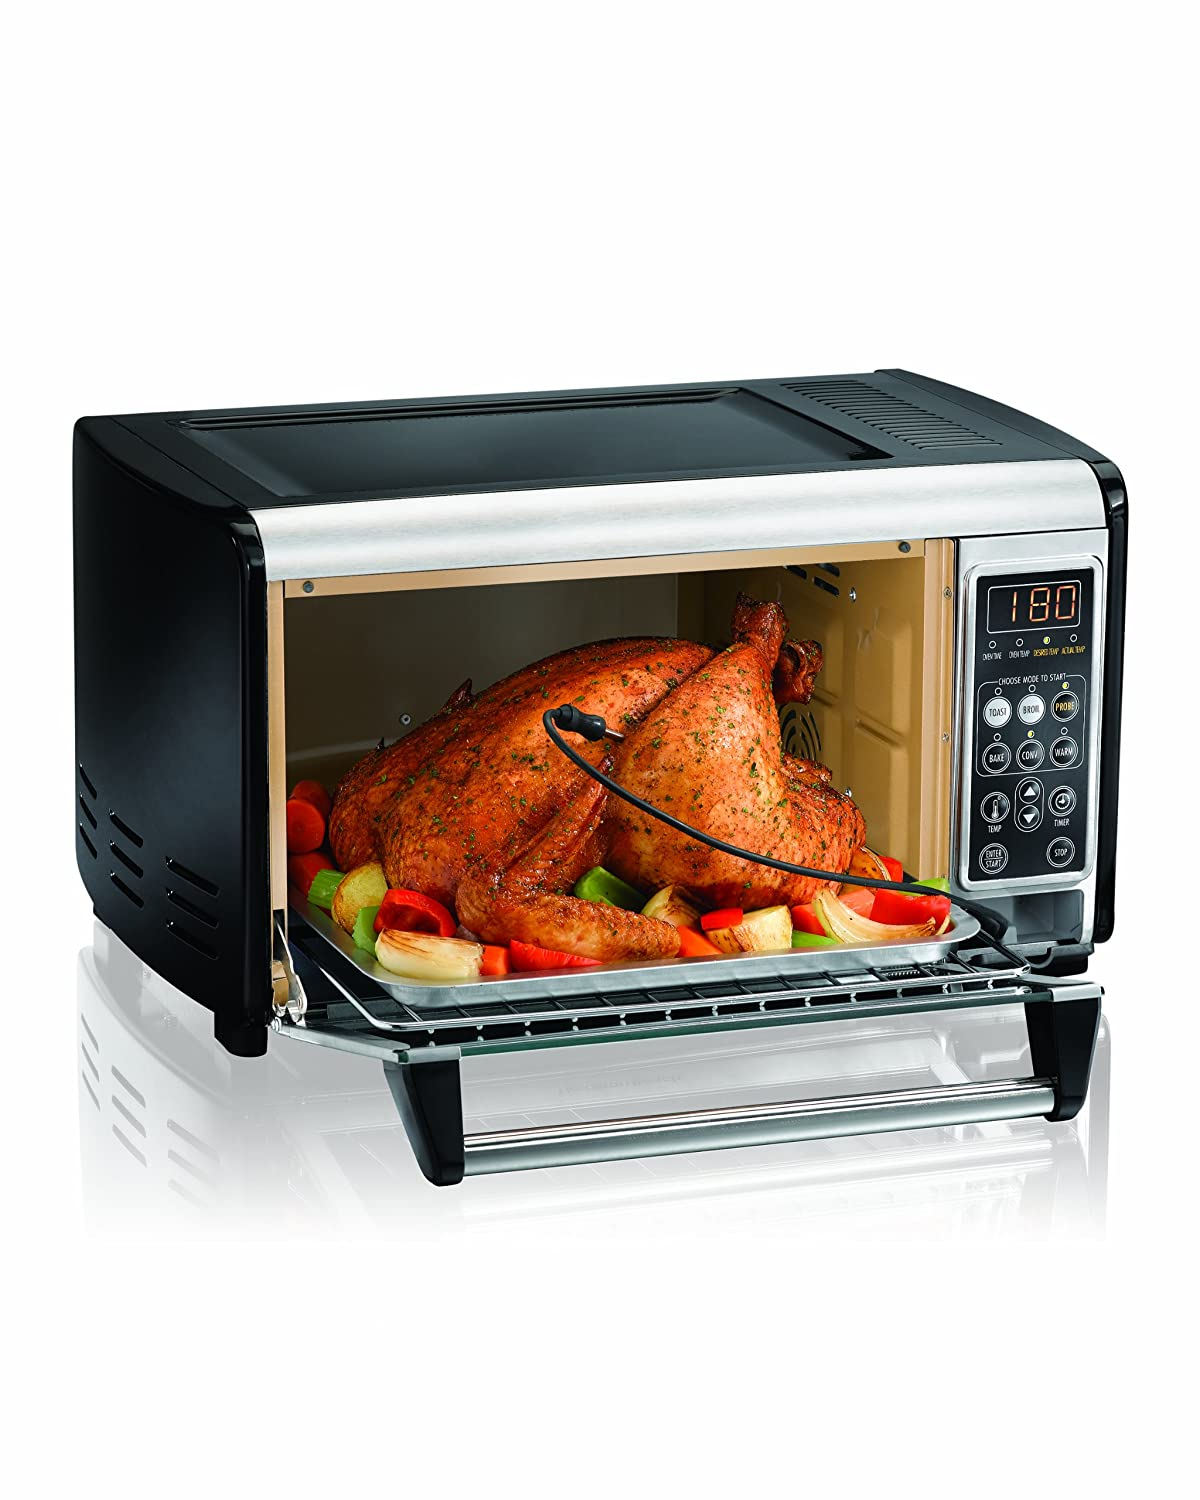 Oven Hamilton Beach Toaster Set With Convection Meat